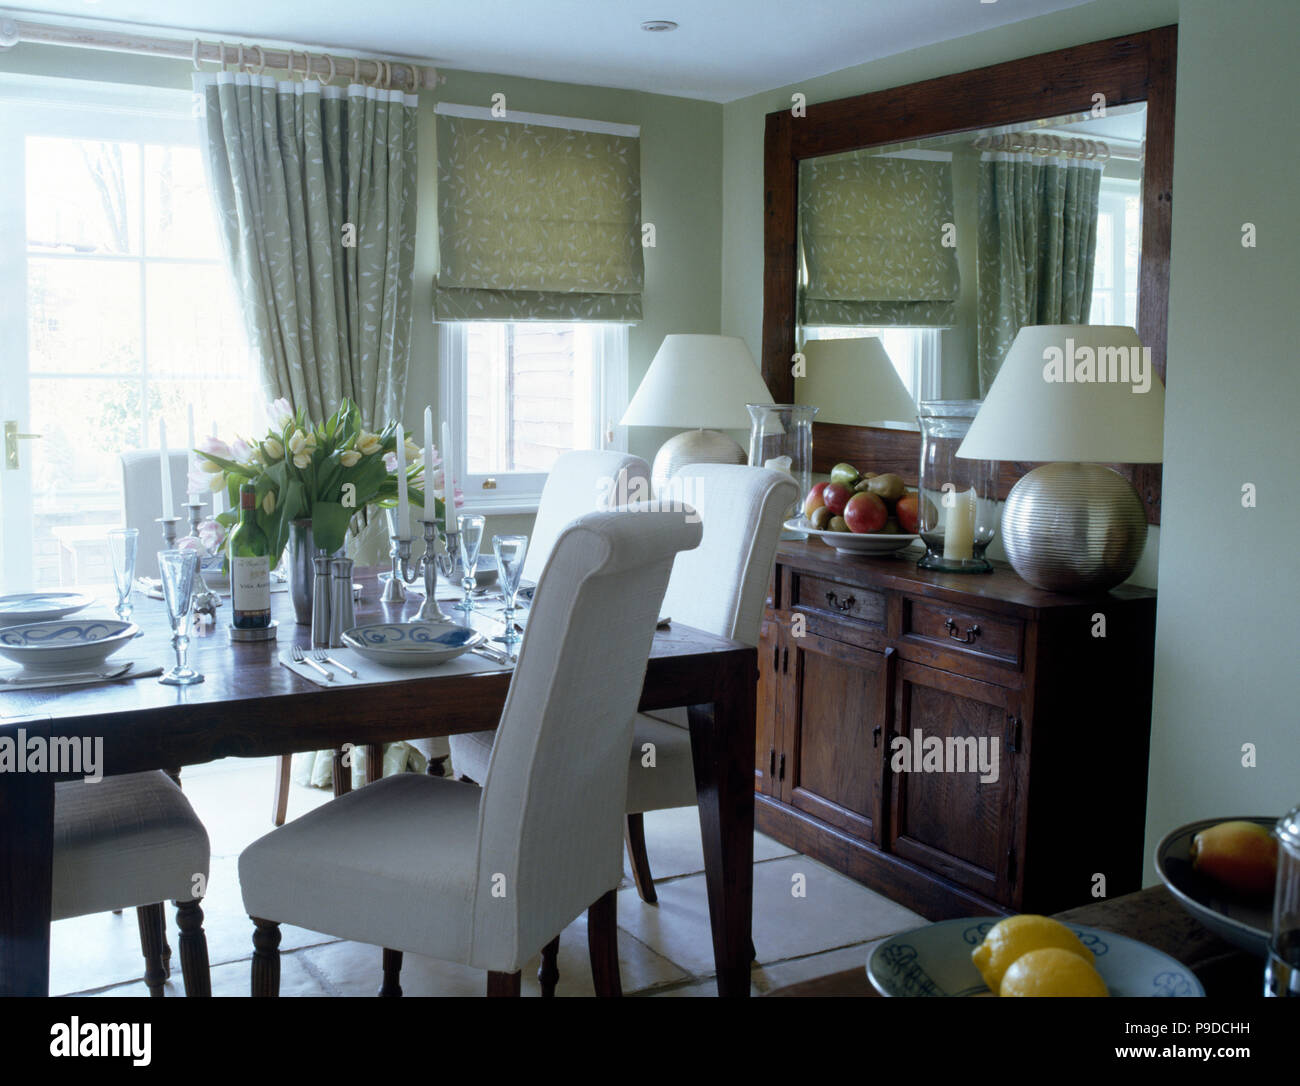 White Upholstered Chairs At Table Set For Lunch In Townhouse Dining Room With Large Mirror Above Sideboard Stock Photo Alamy